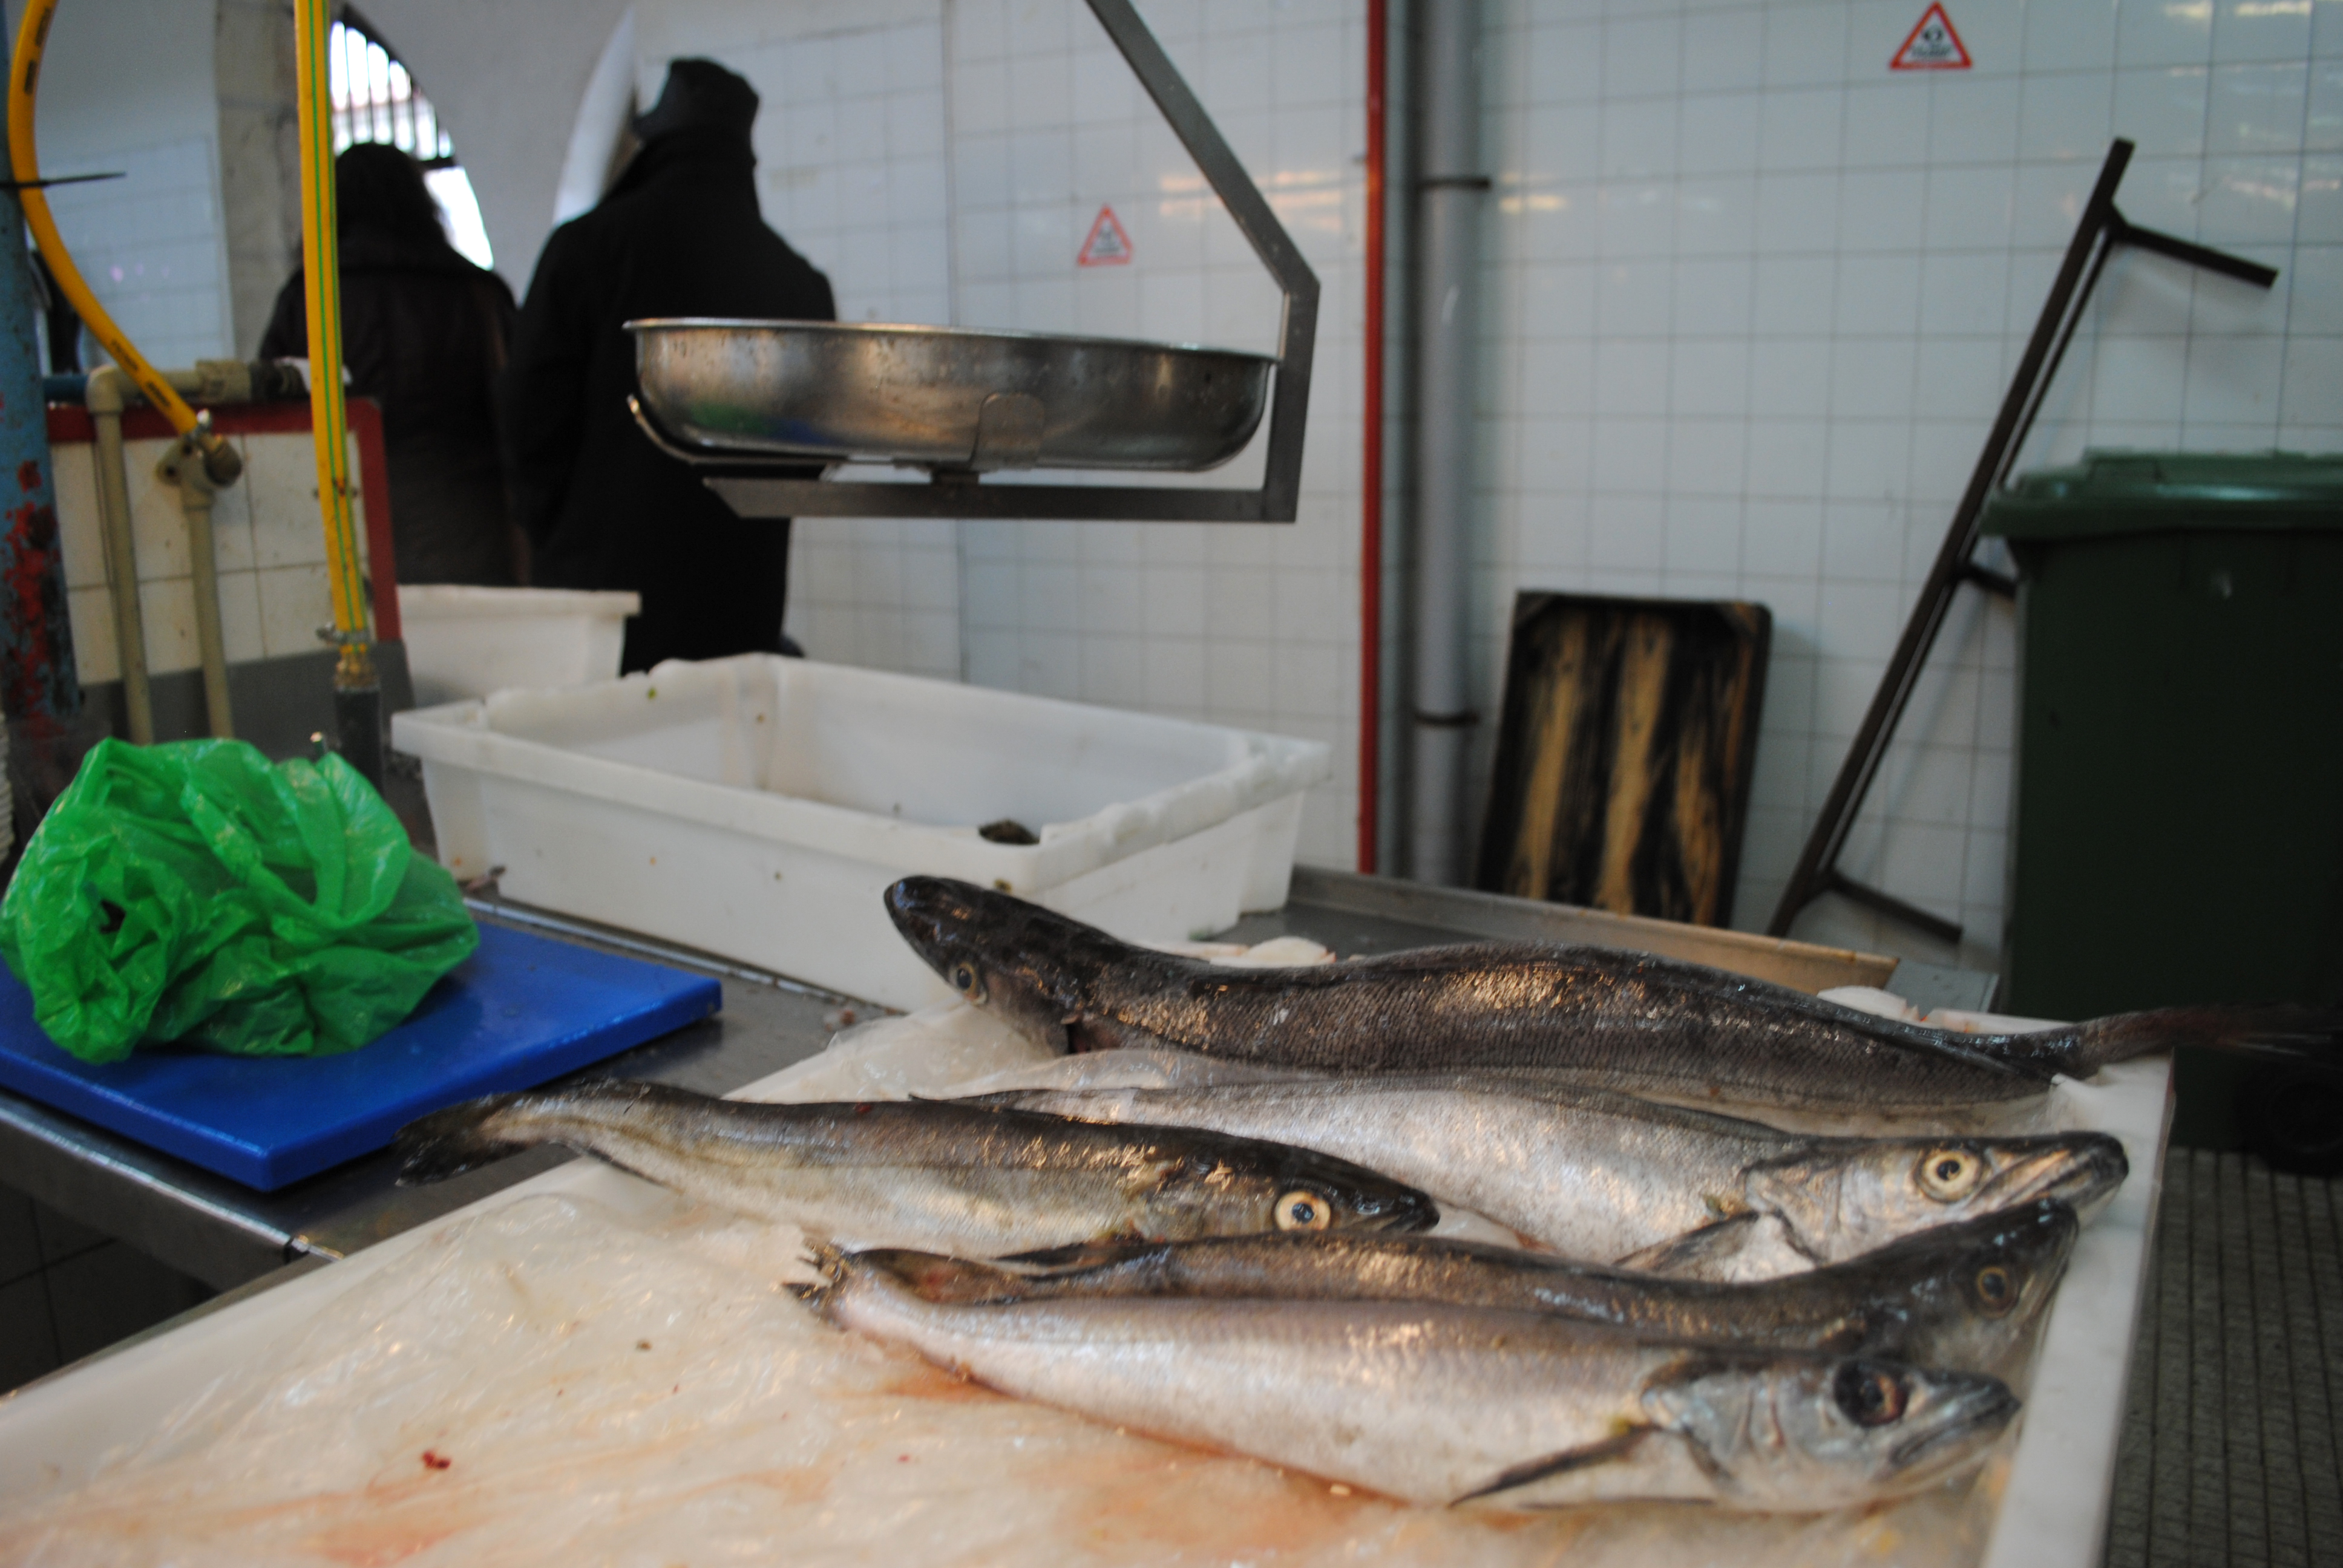 A fish market in Cambados, a town in Galicia